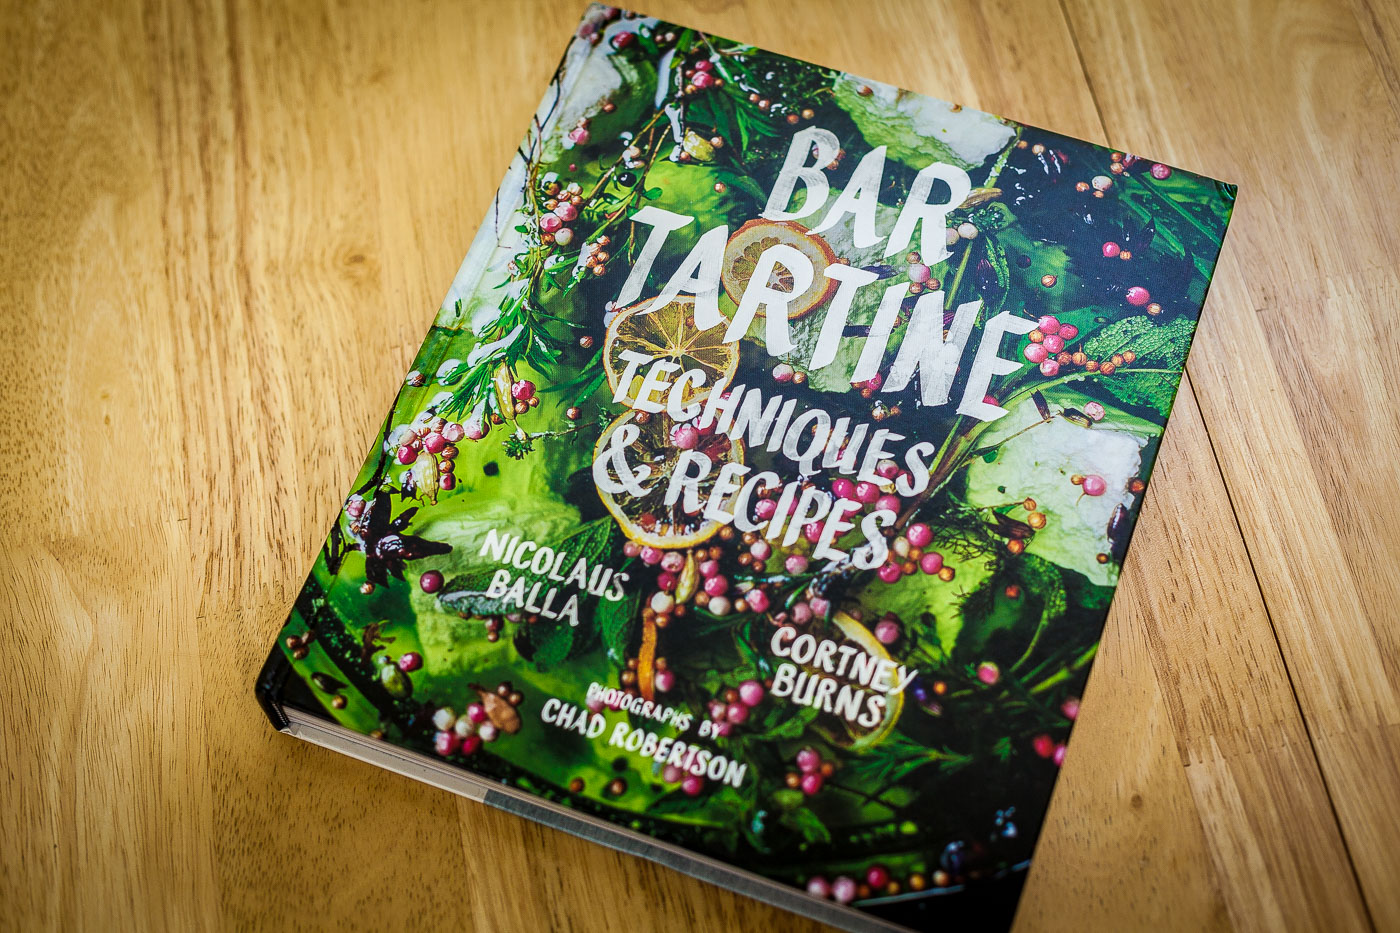 bar-tartine-sf-book-1